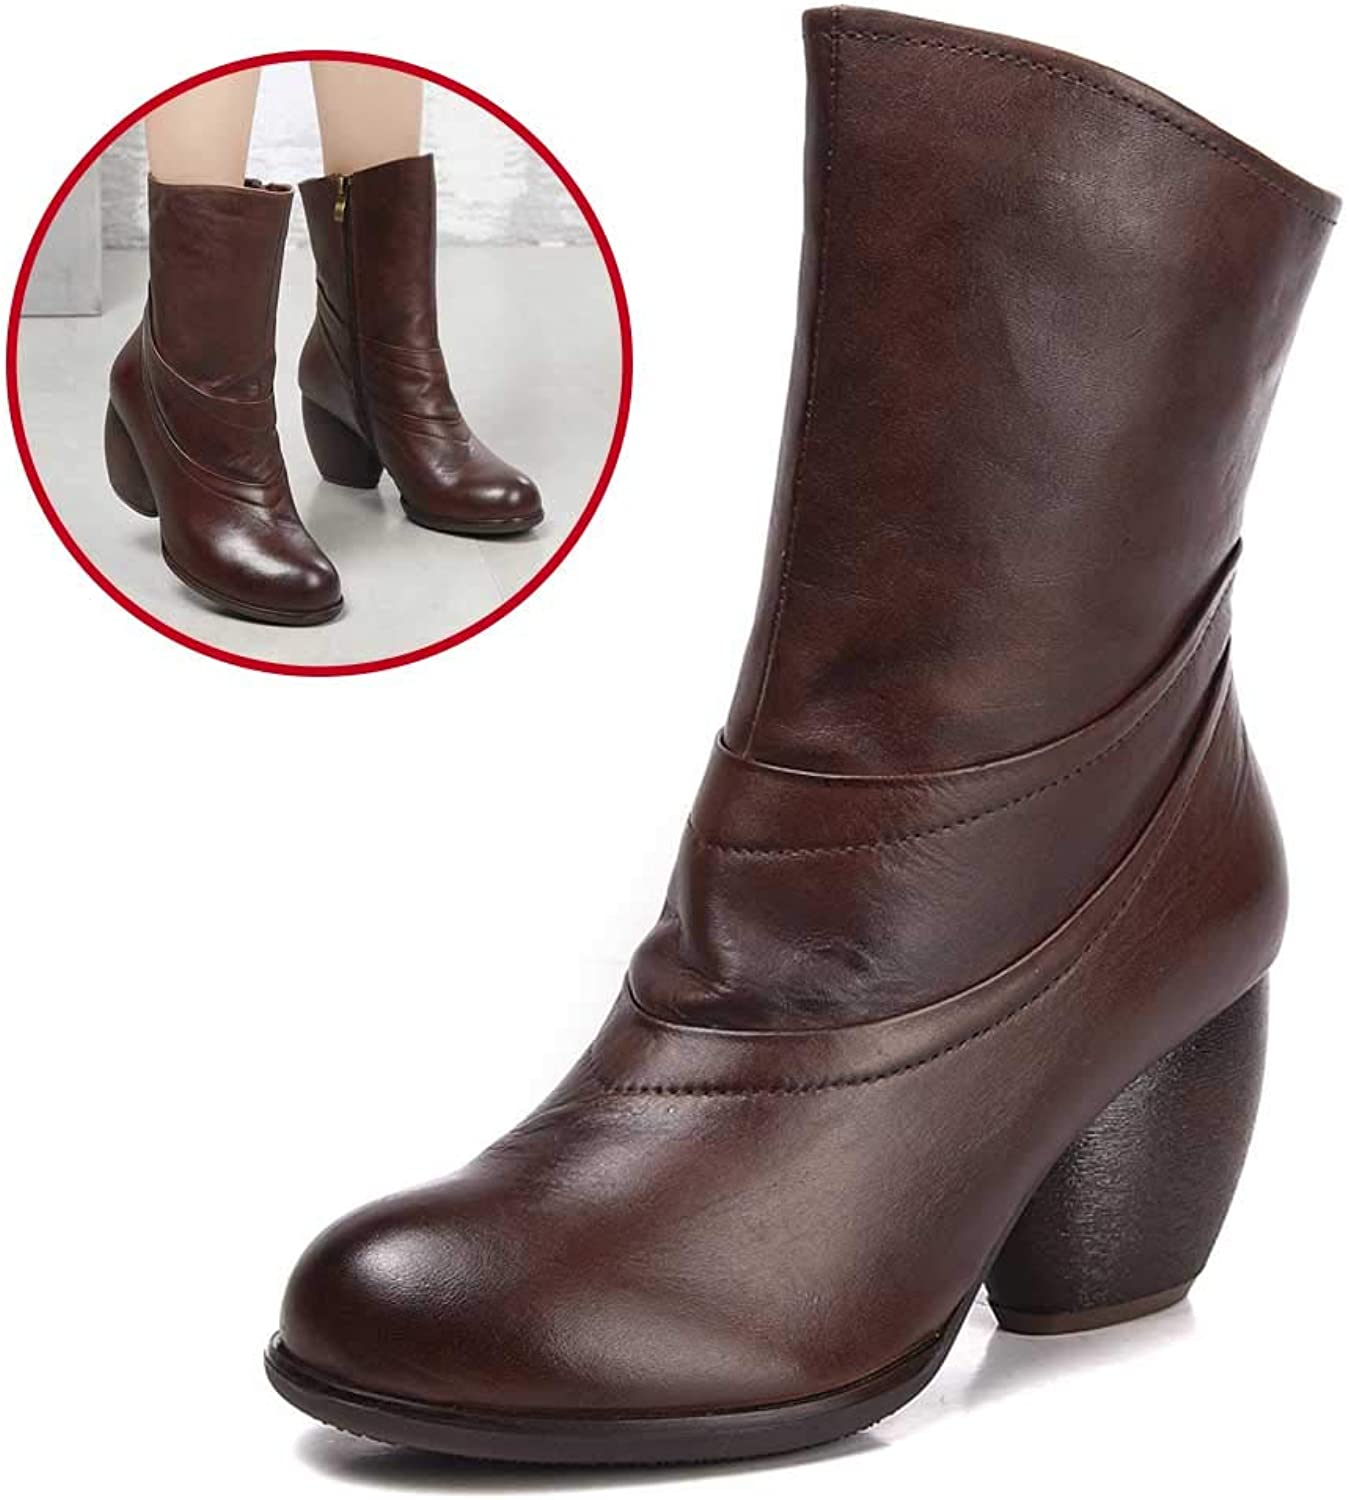 Women's Martin Boots, Leather high Heel Ankle Boots, Leather Non-Slip Platform Women's shoes Greib   Brown Size 35-39